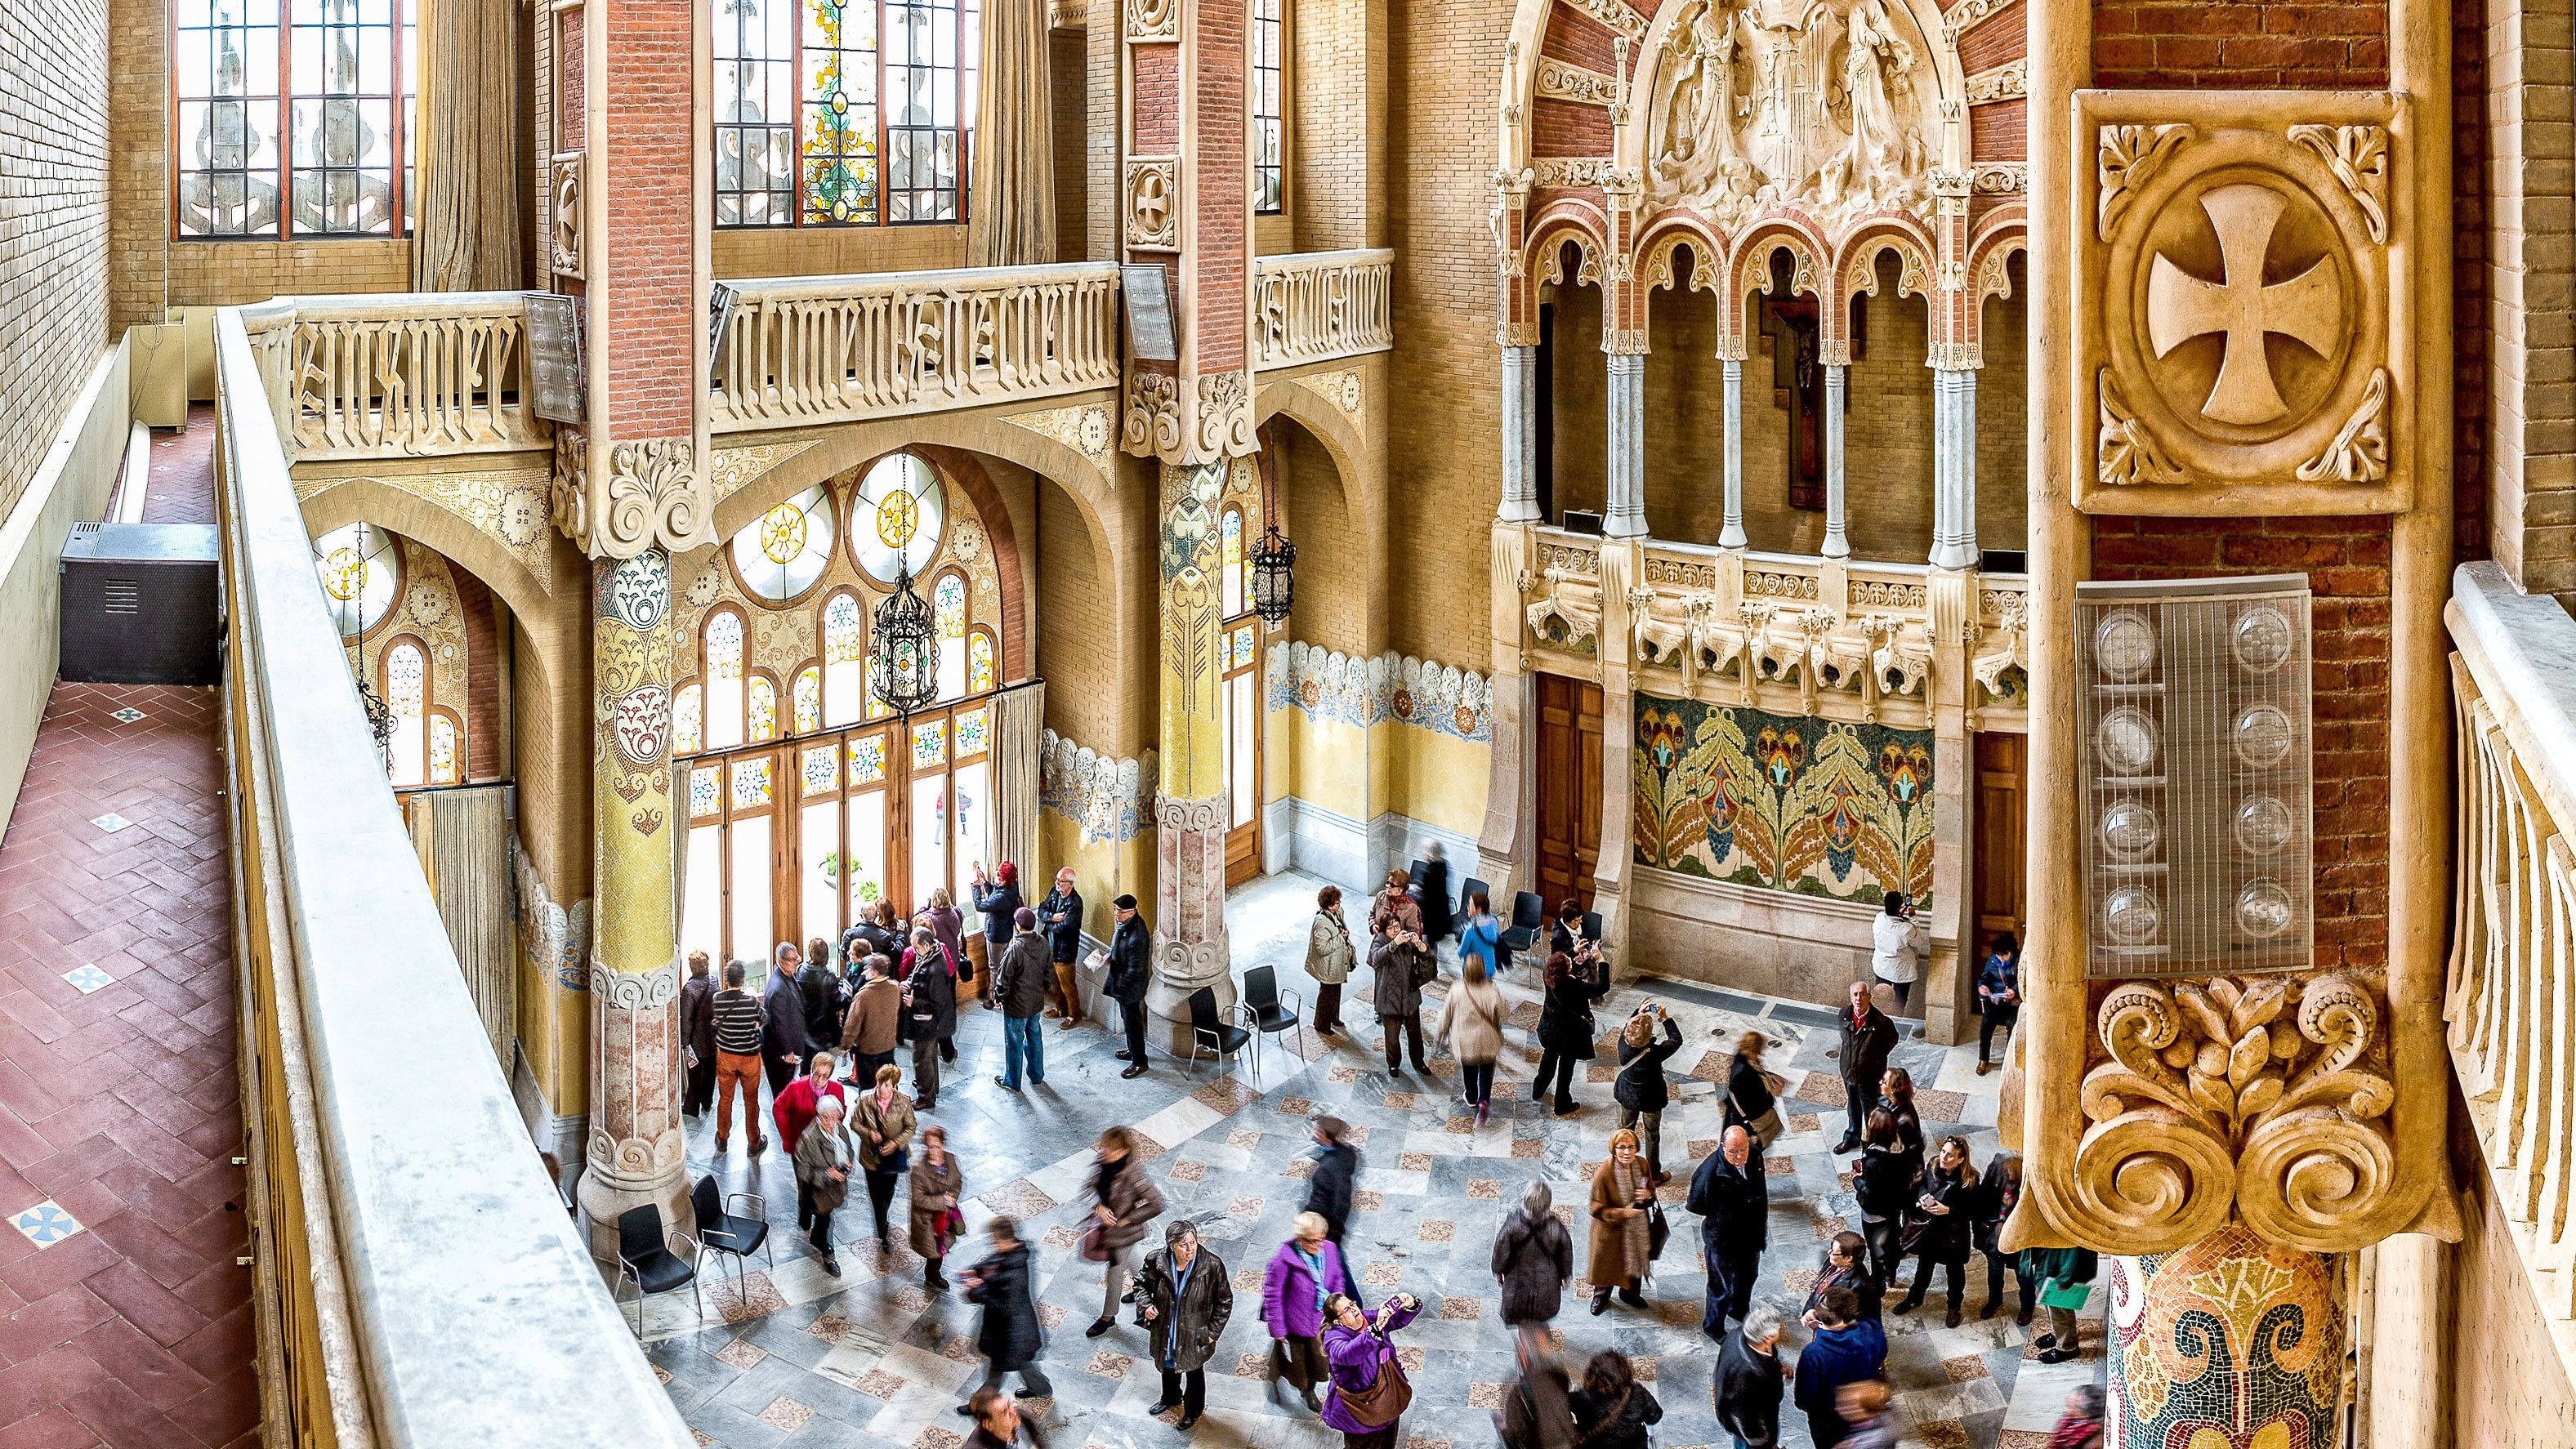 Tourists looking at the beautiful interior of a cathedral in Sant Pau